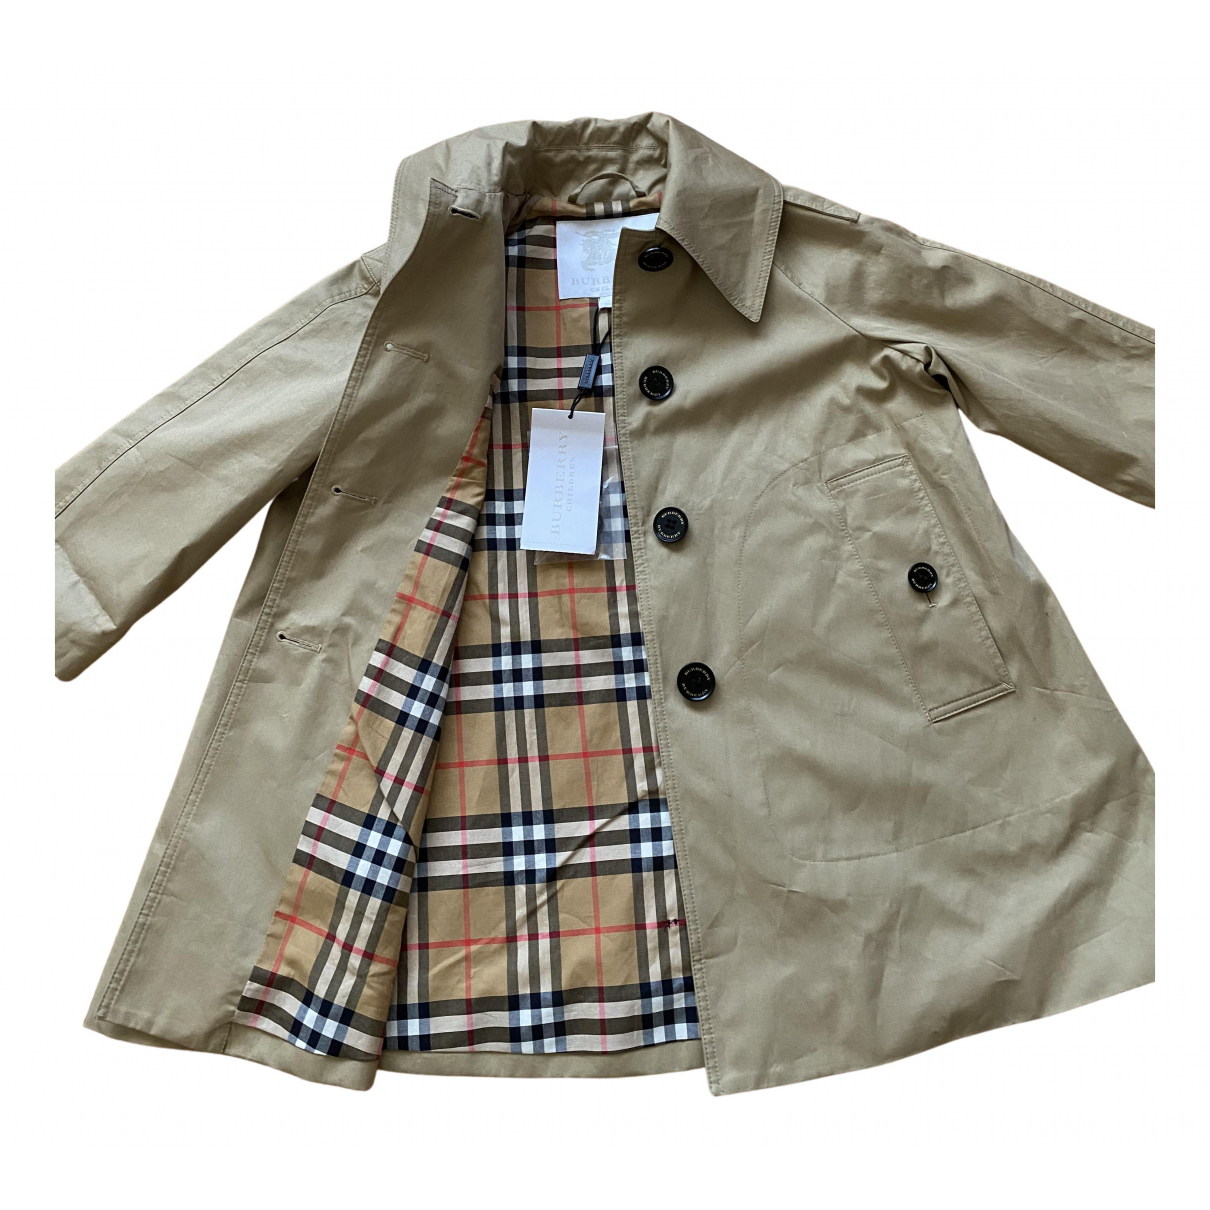 Burberry \N Beige Cotton jacket & coat for Kids 4 years - until 40 inches UK